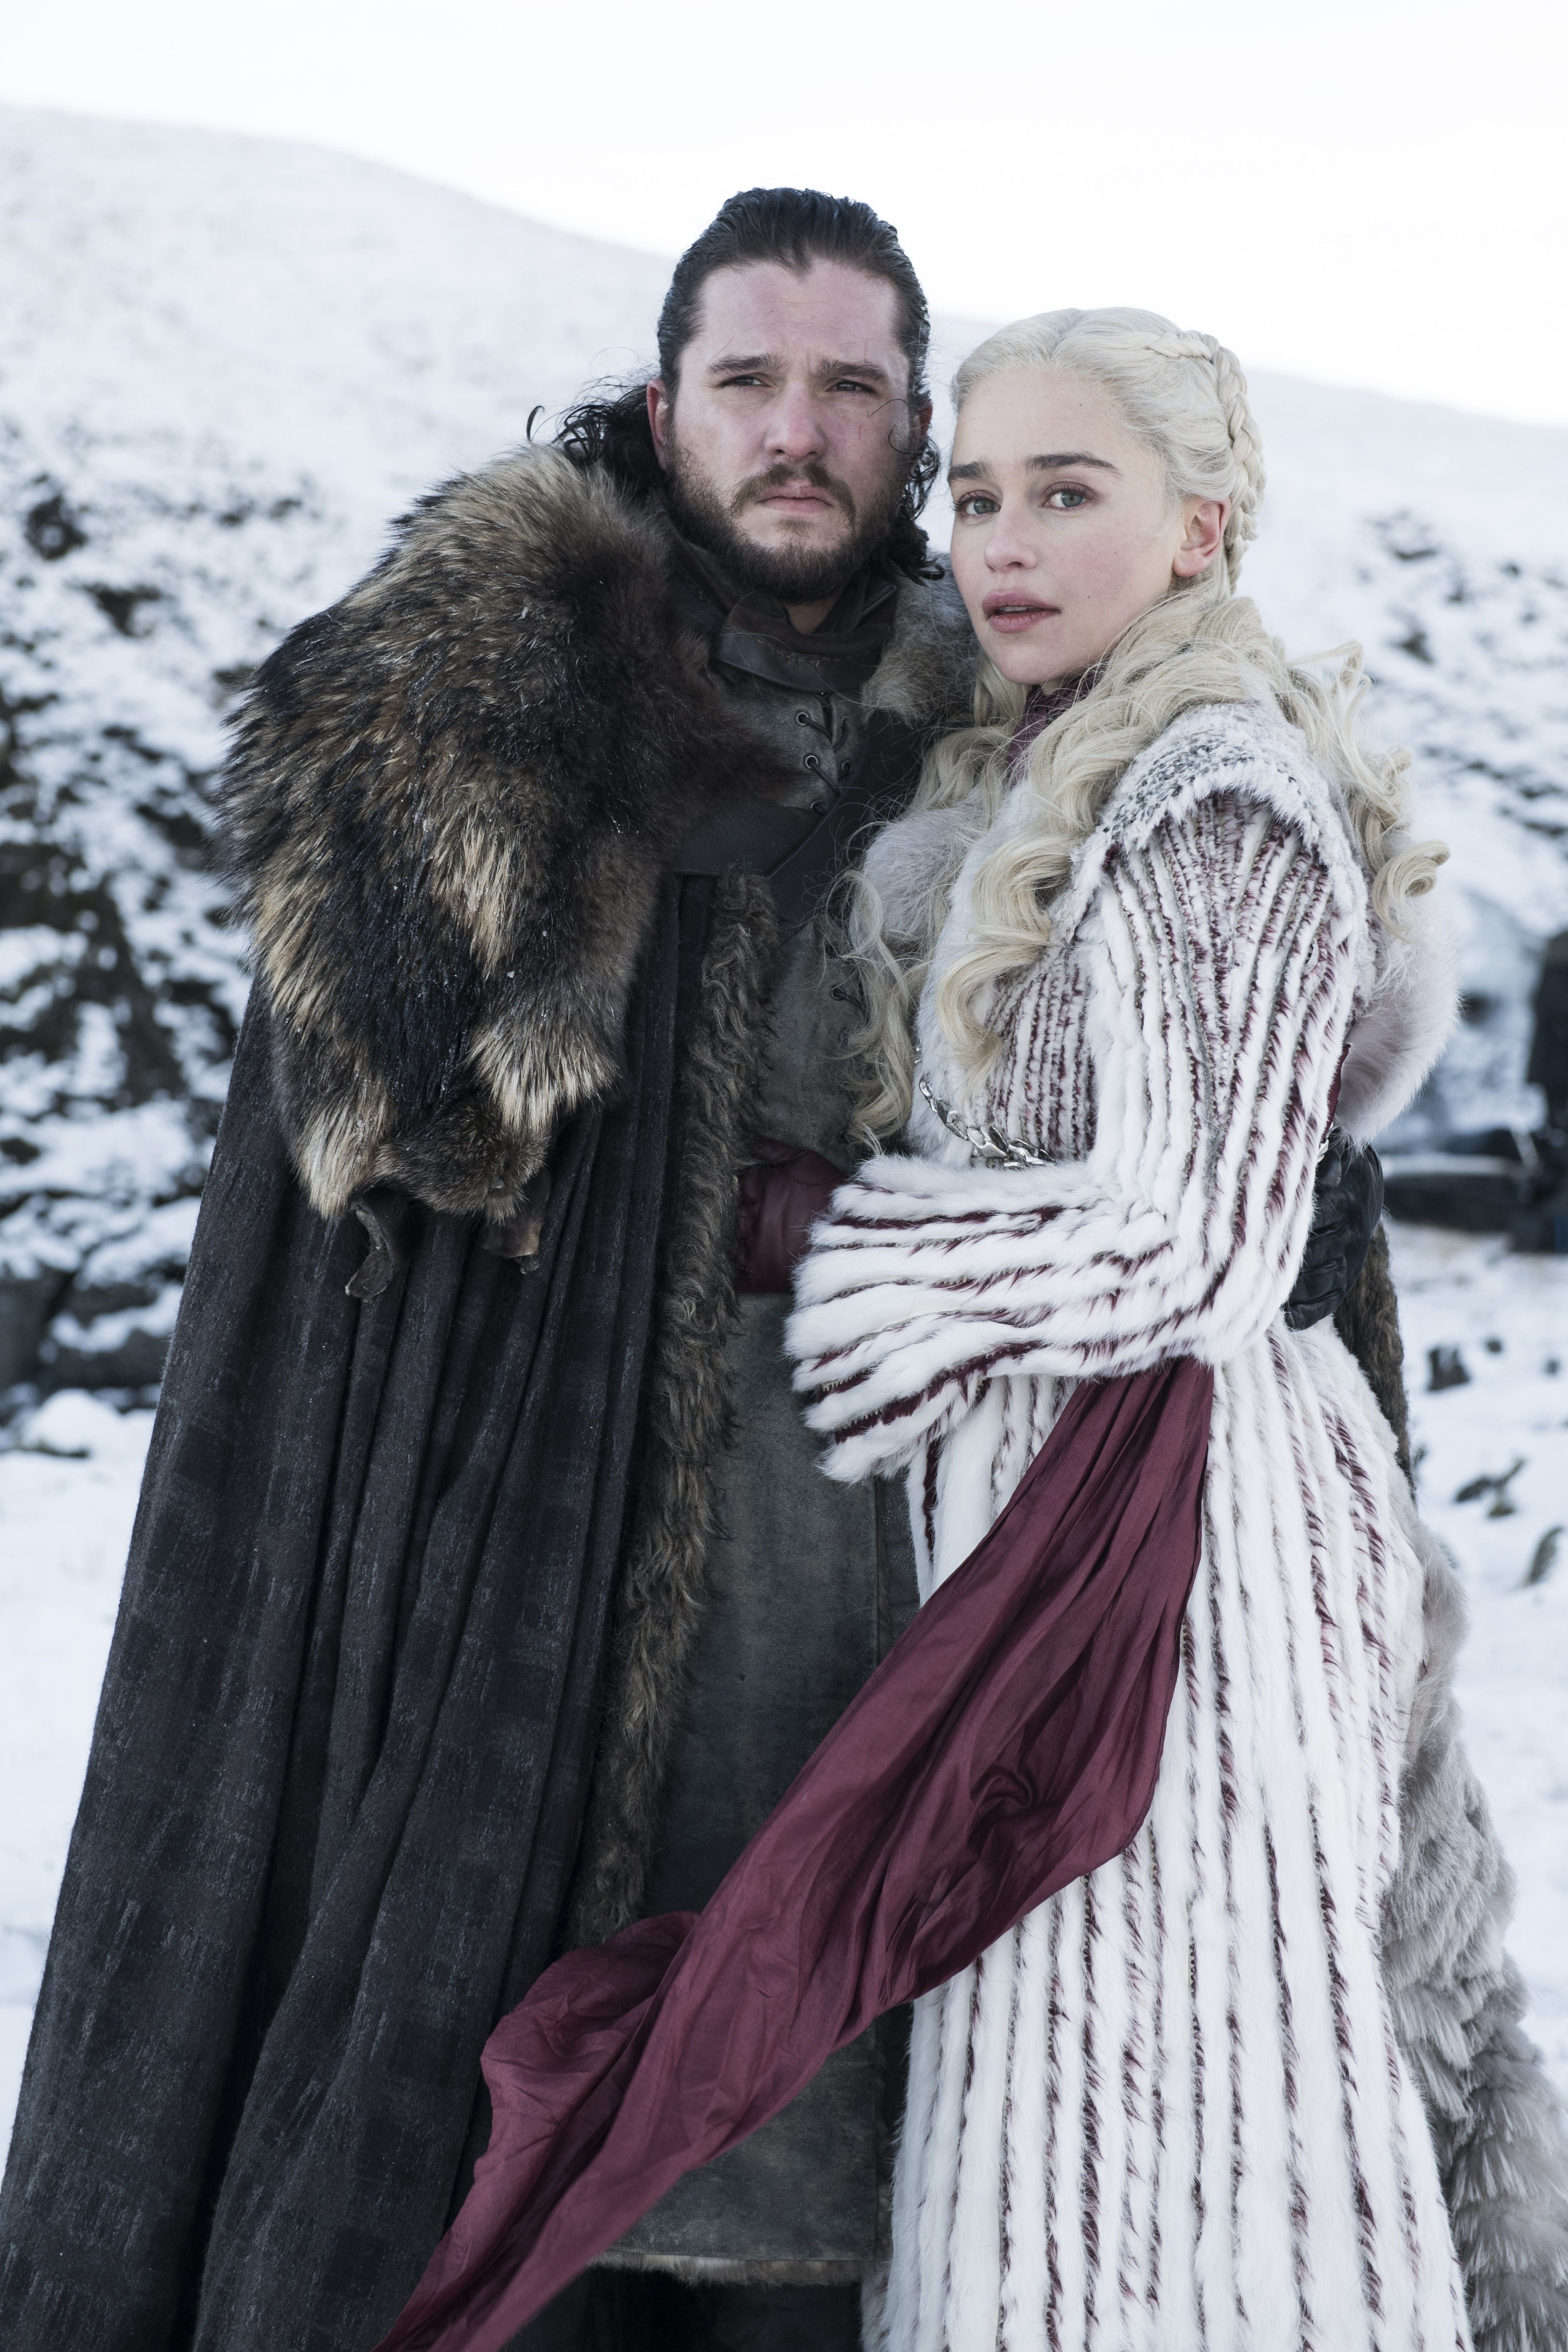 Pin by 𝓢𝓲𝓶𝓹𝓵𝔂 𝓢𝓪𝓵 on Fantasy costumes   Jon snow and ...